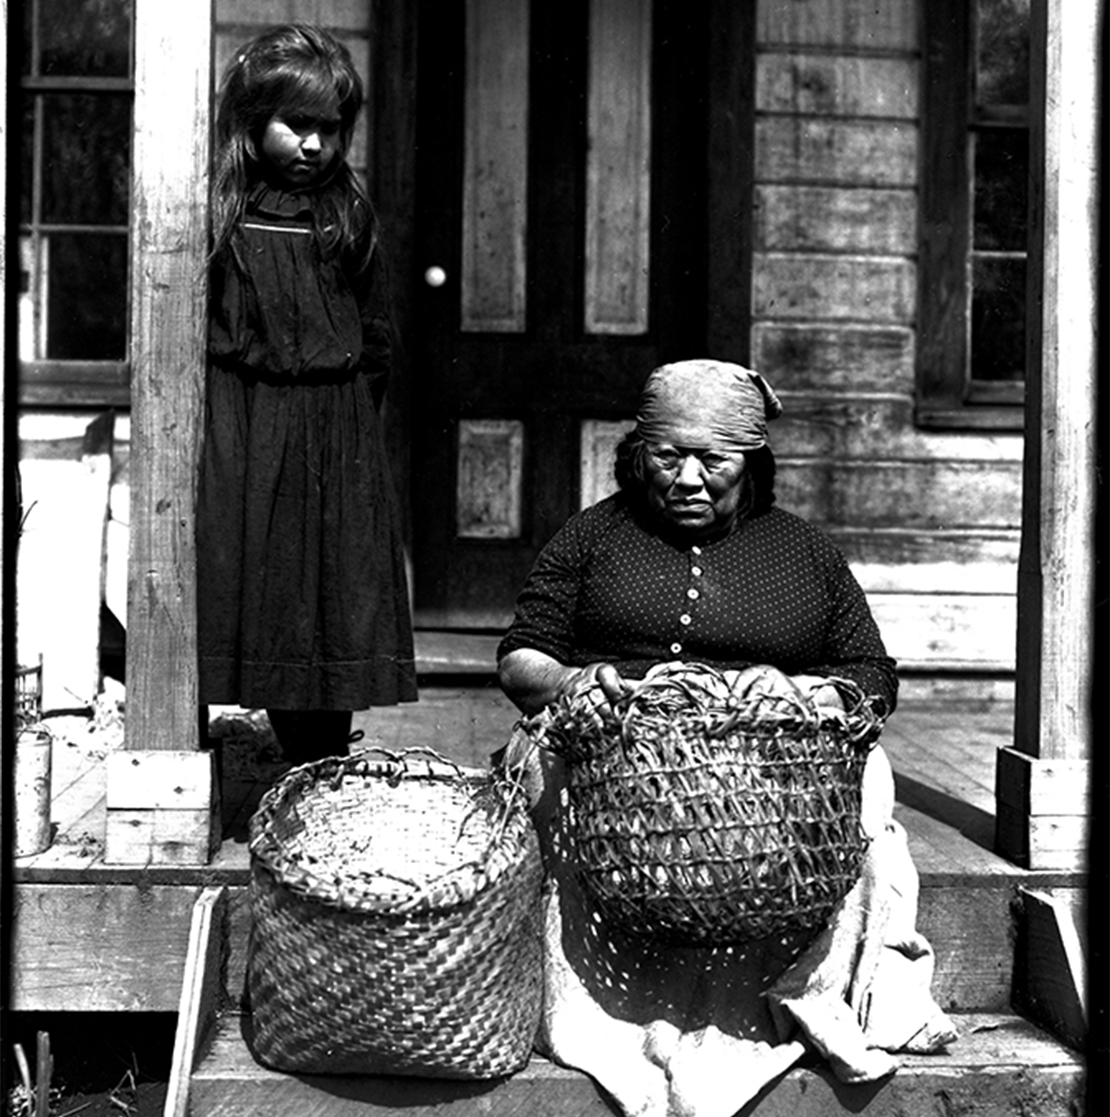 This weaver on the Skokomish Reservation in 1095 is seen with twilled cedar bark and cross-warp cedar root baskets. Photo by Asahel Curtis, courtesy of Washington State Historical Society